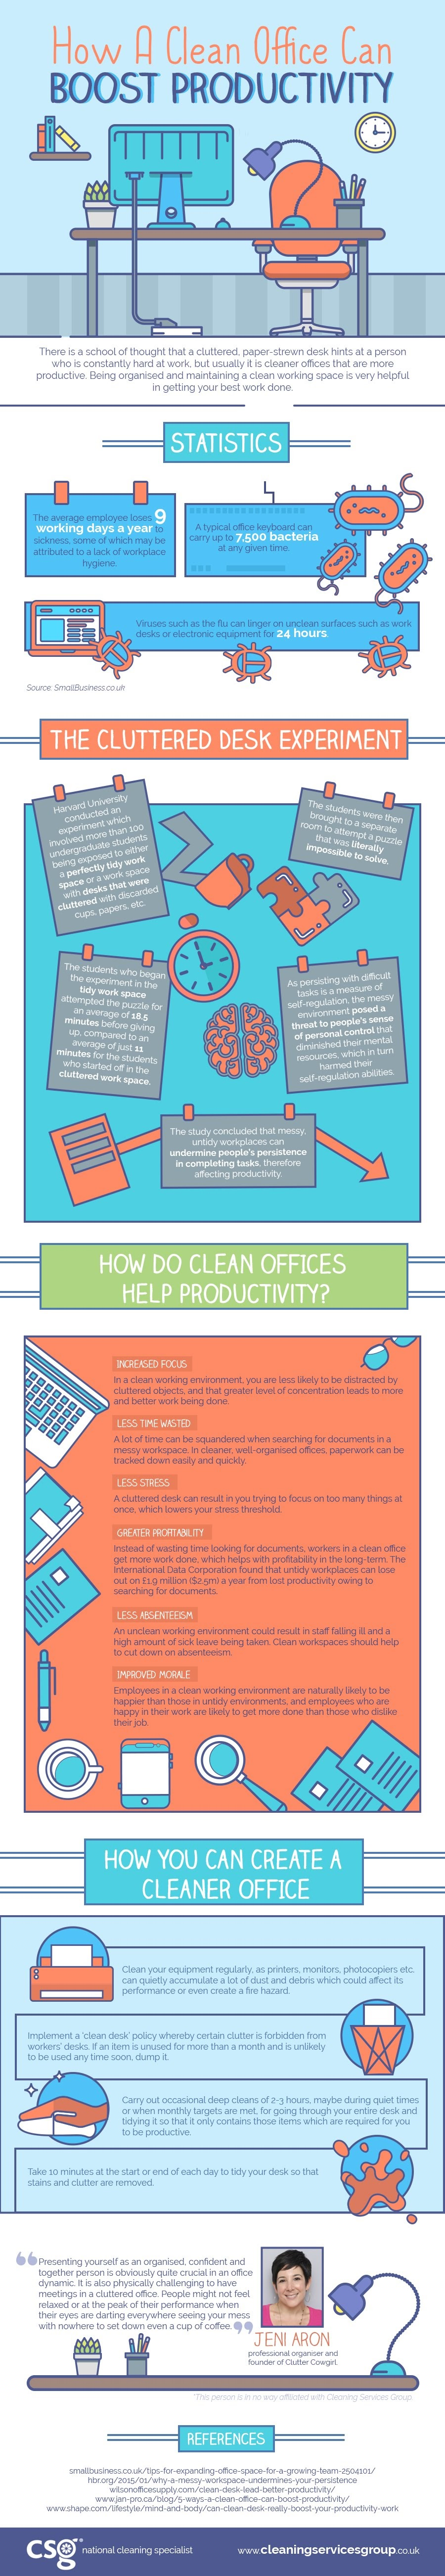 How a Clean Office Can Boost Productivity #Infographic